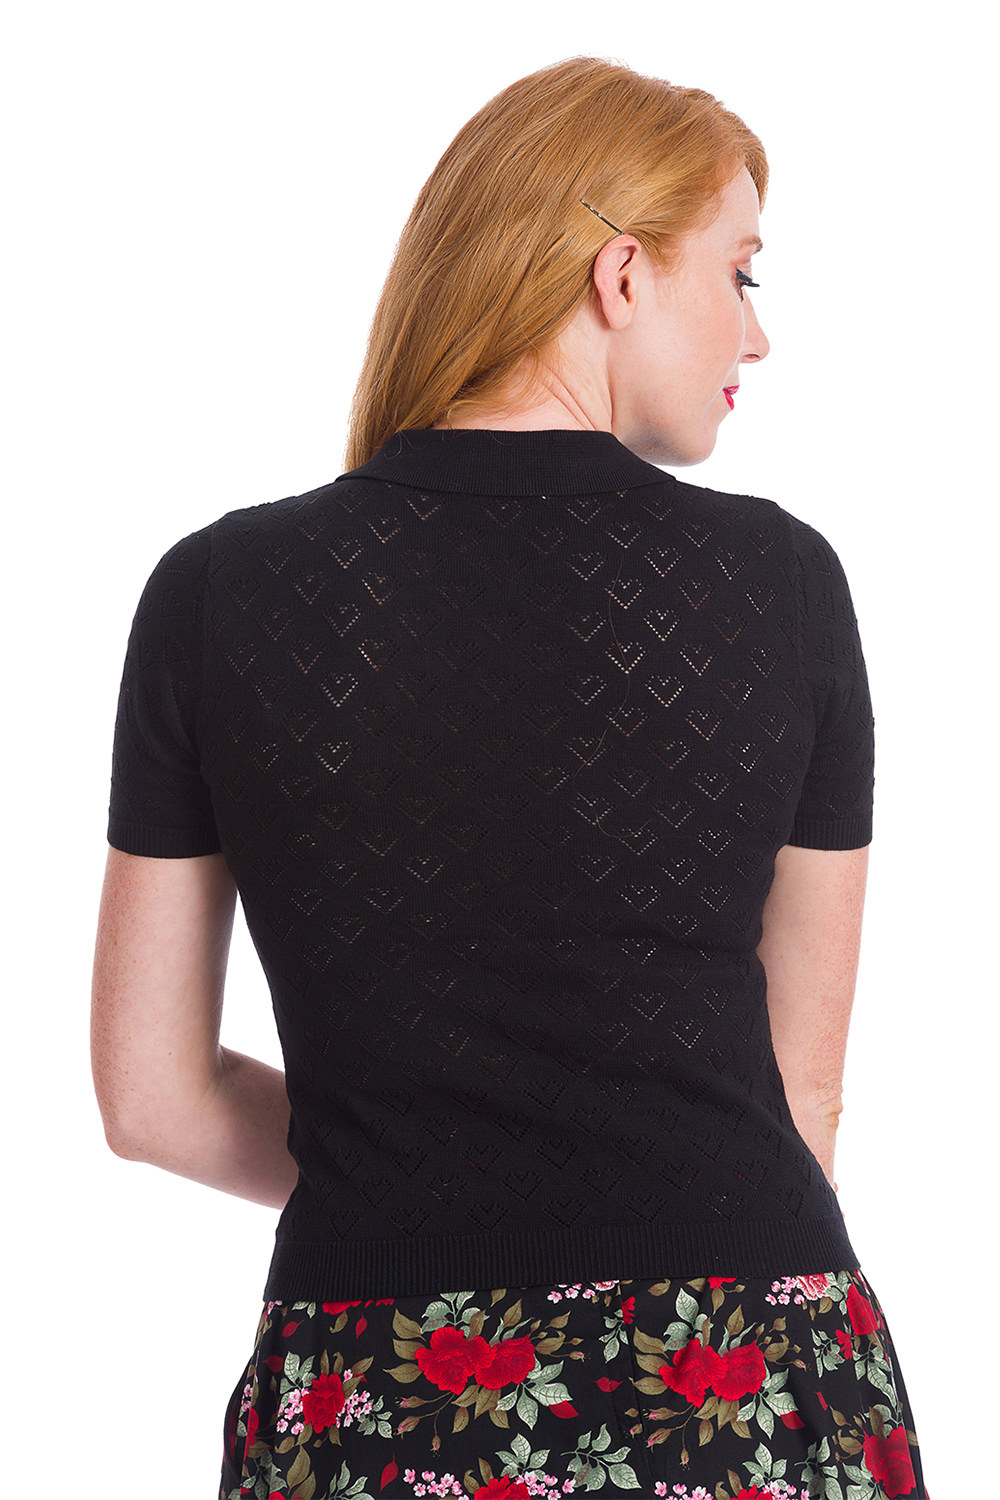 Banned 50s Smart Love Hearts Black Knit Top